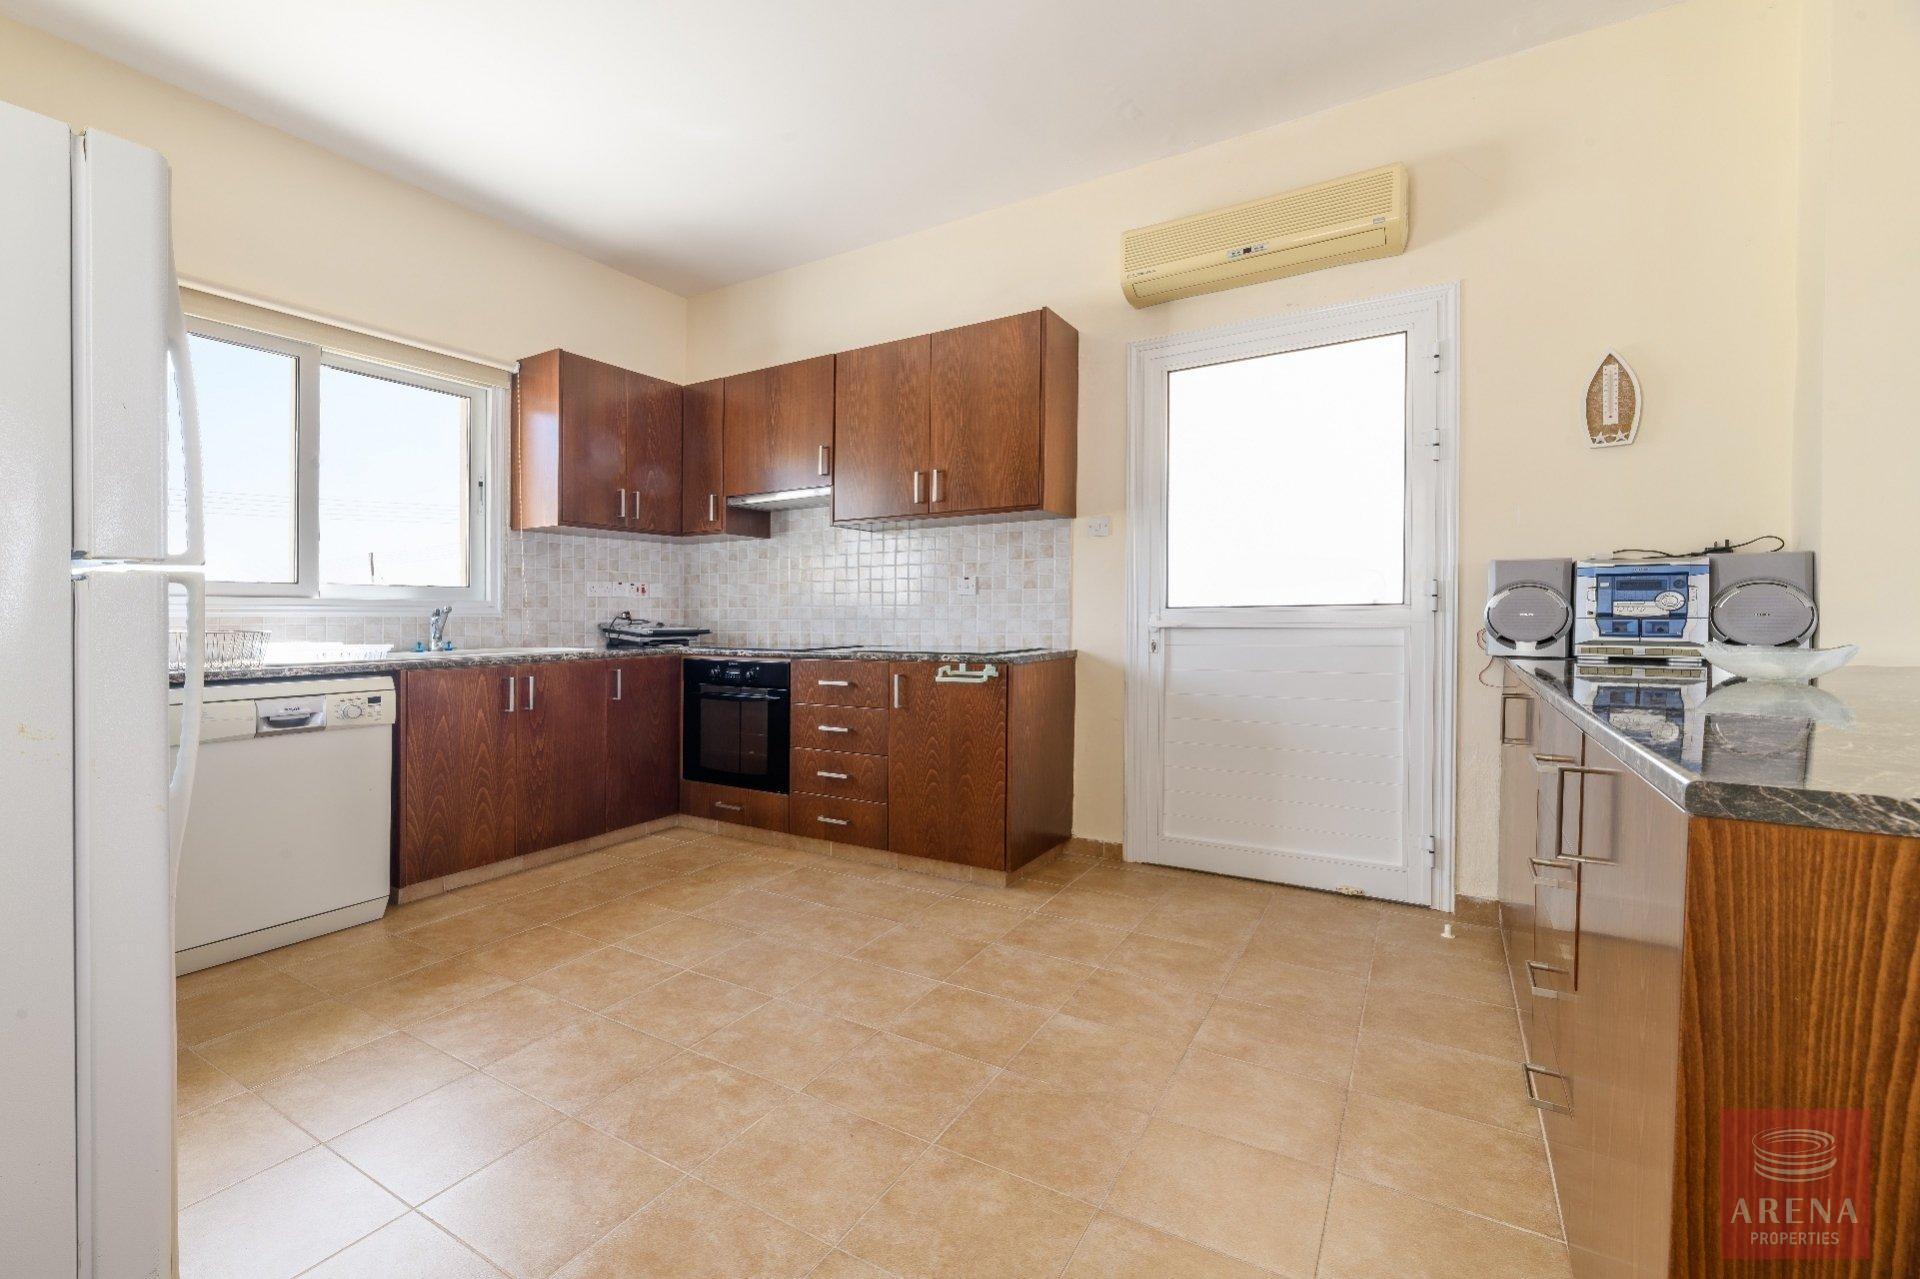 semi-detached house in paralimni - kitchen